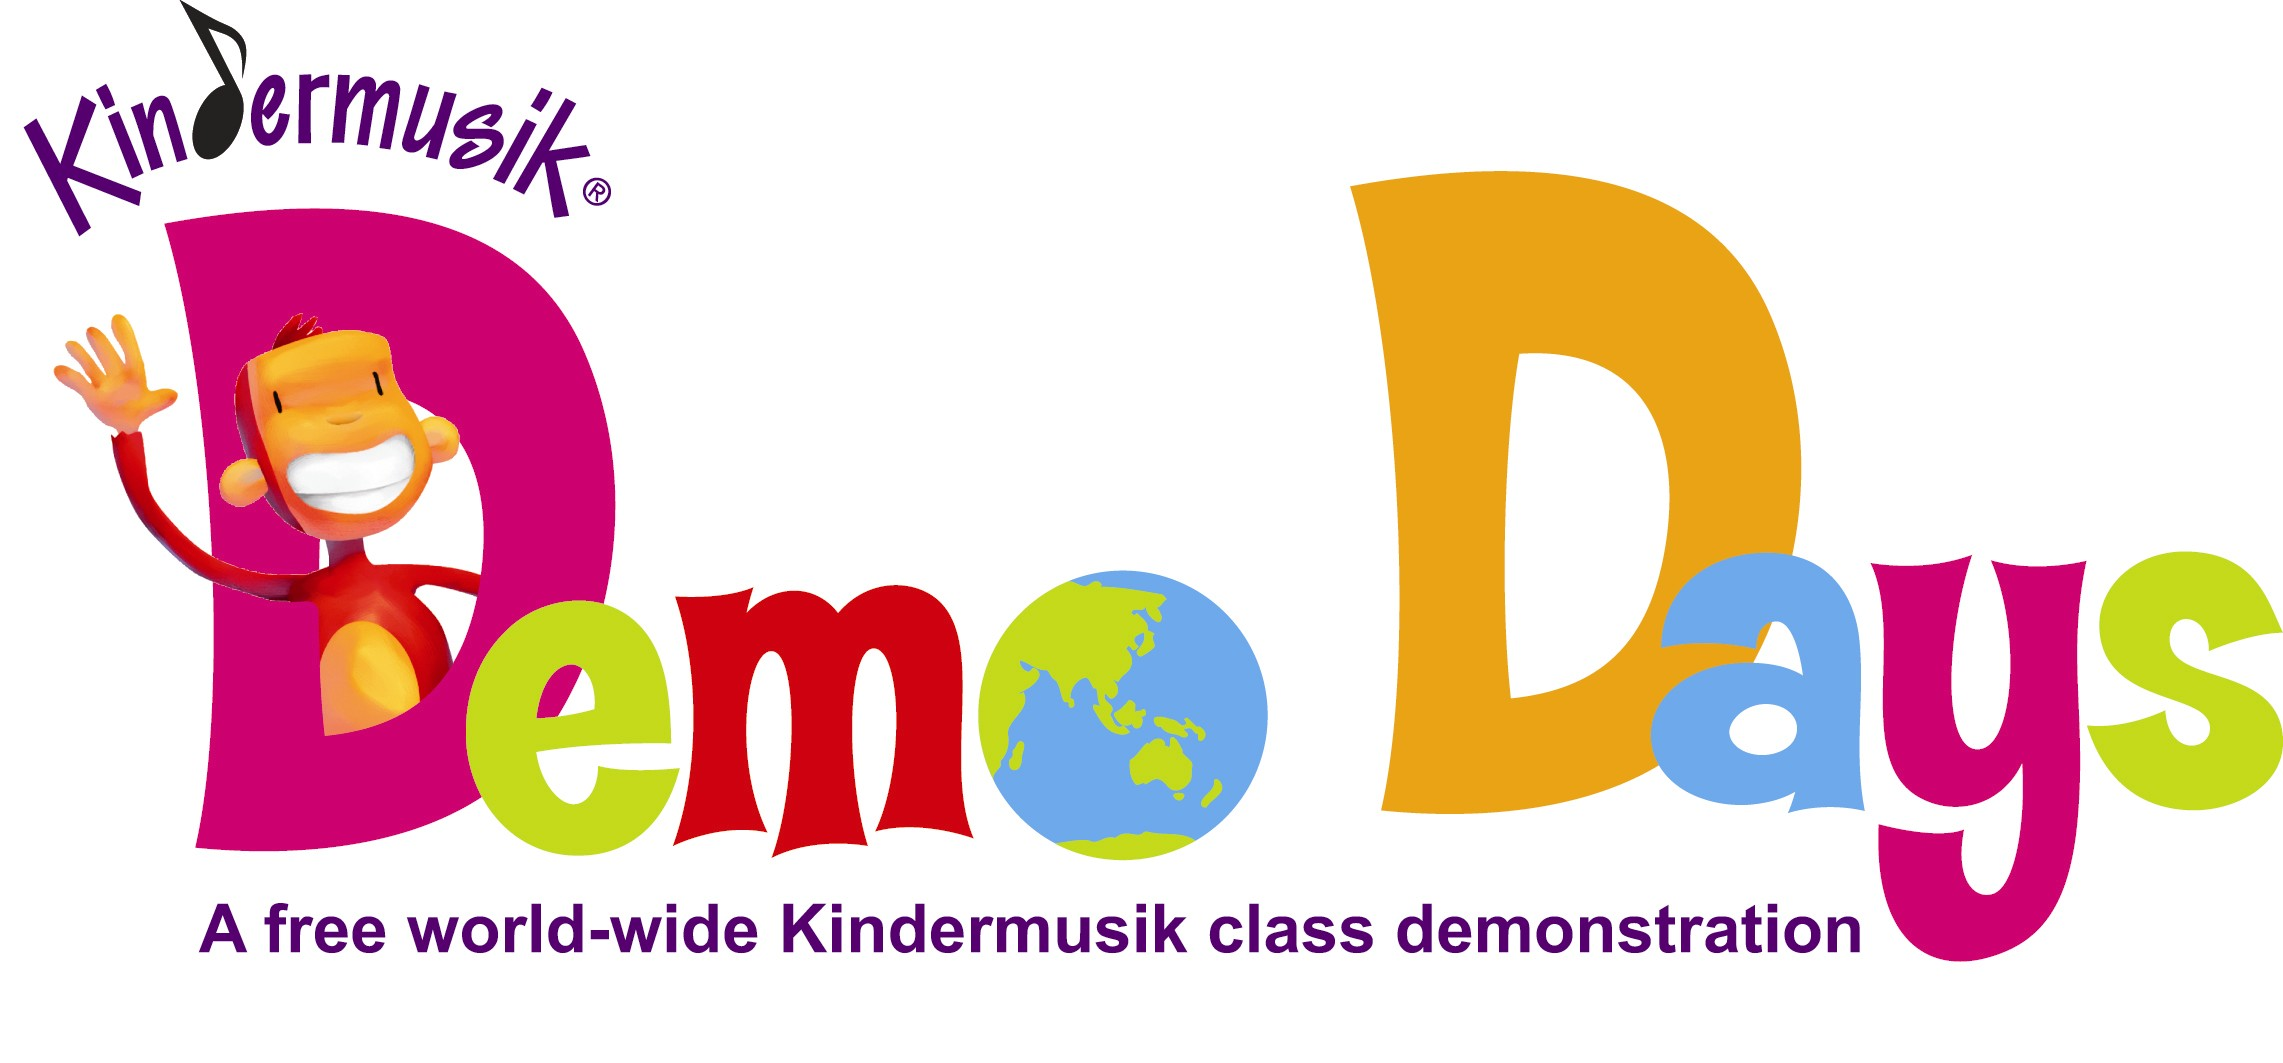 Free Savannah kids events Free Kindermusik classes